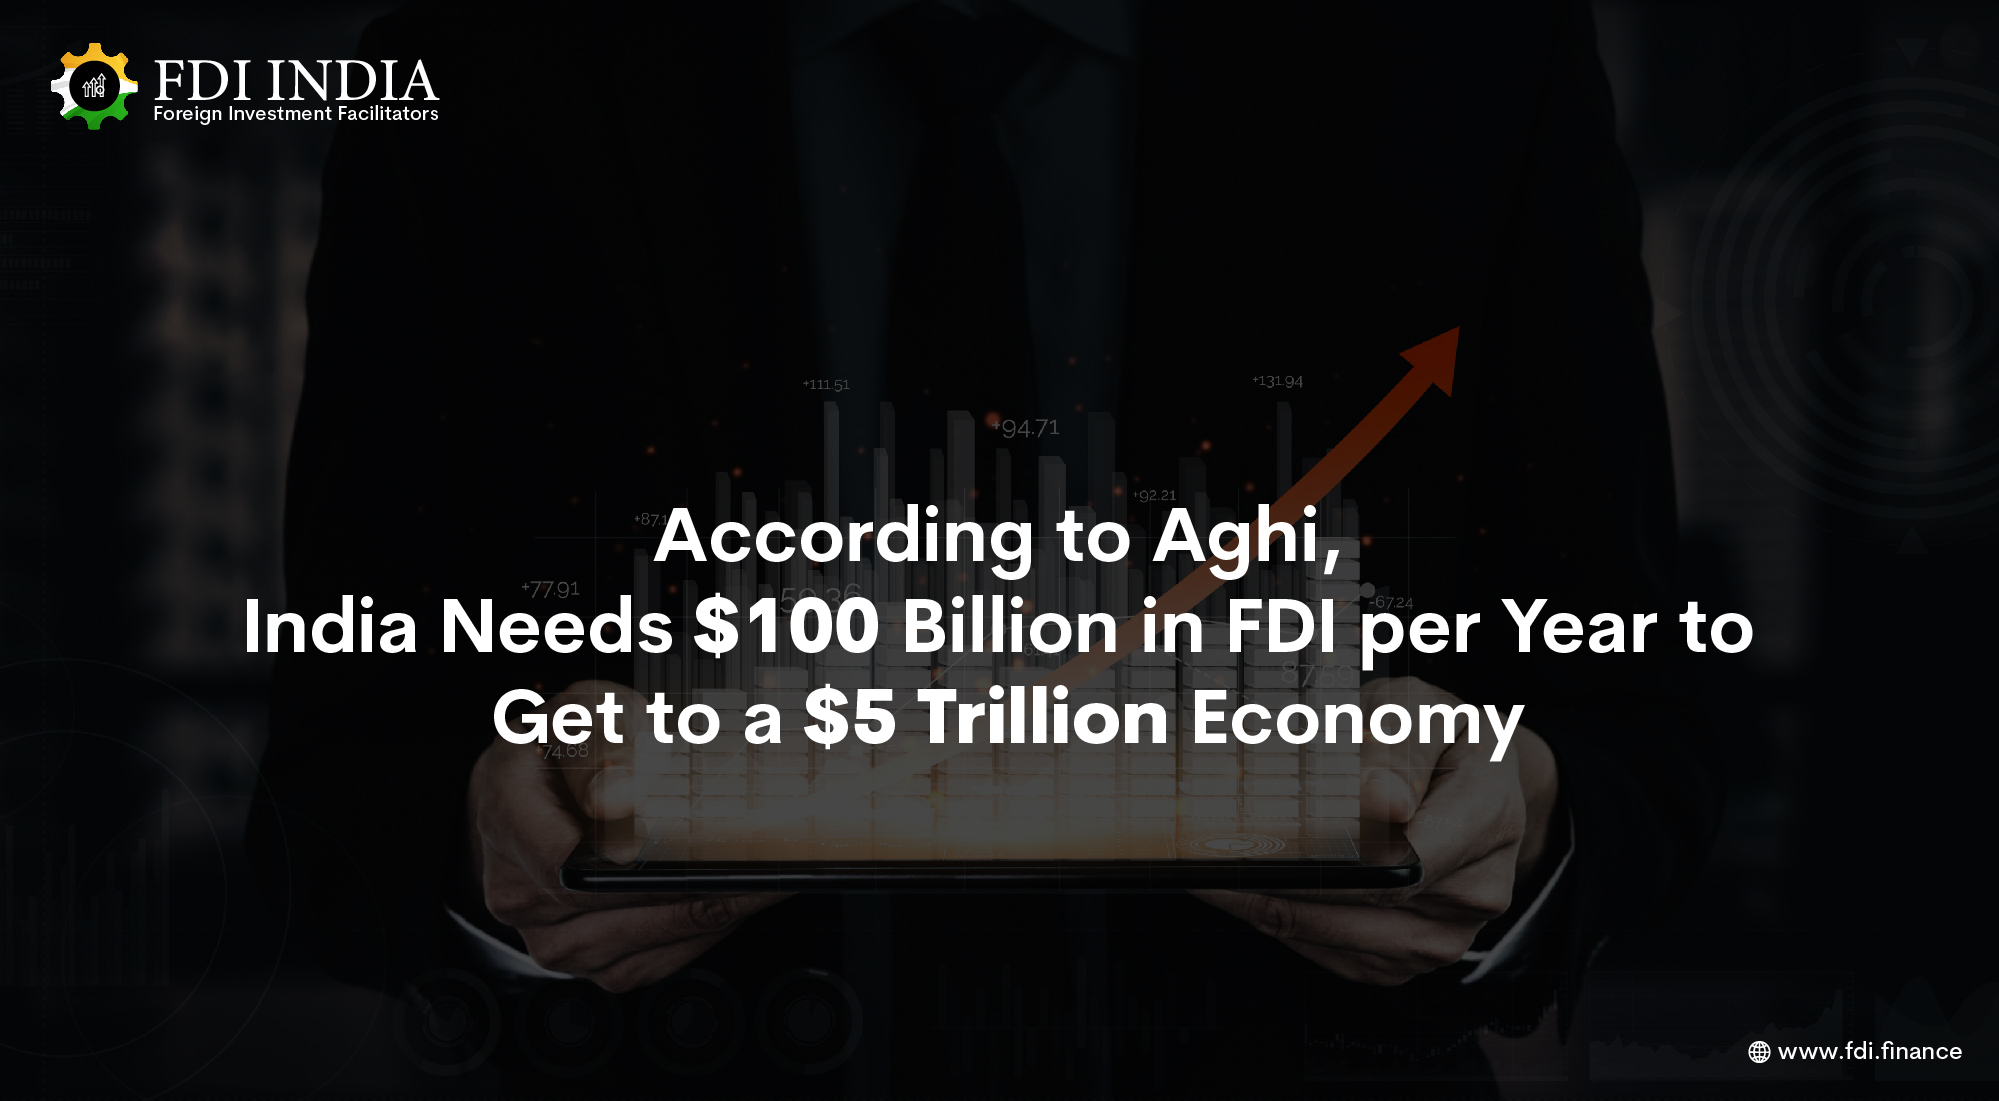 According to Aghi, India Needs $100 Billion in FDI per Year to Get to a $5 Trillion Economy